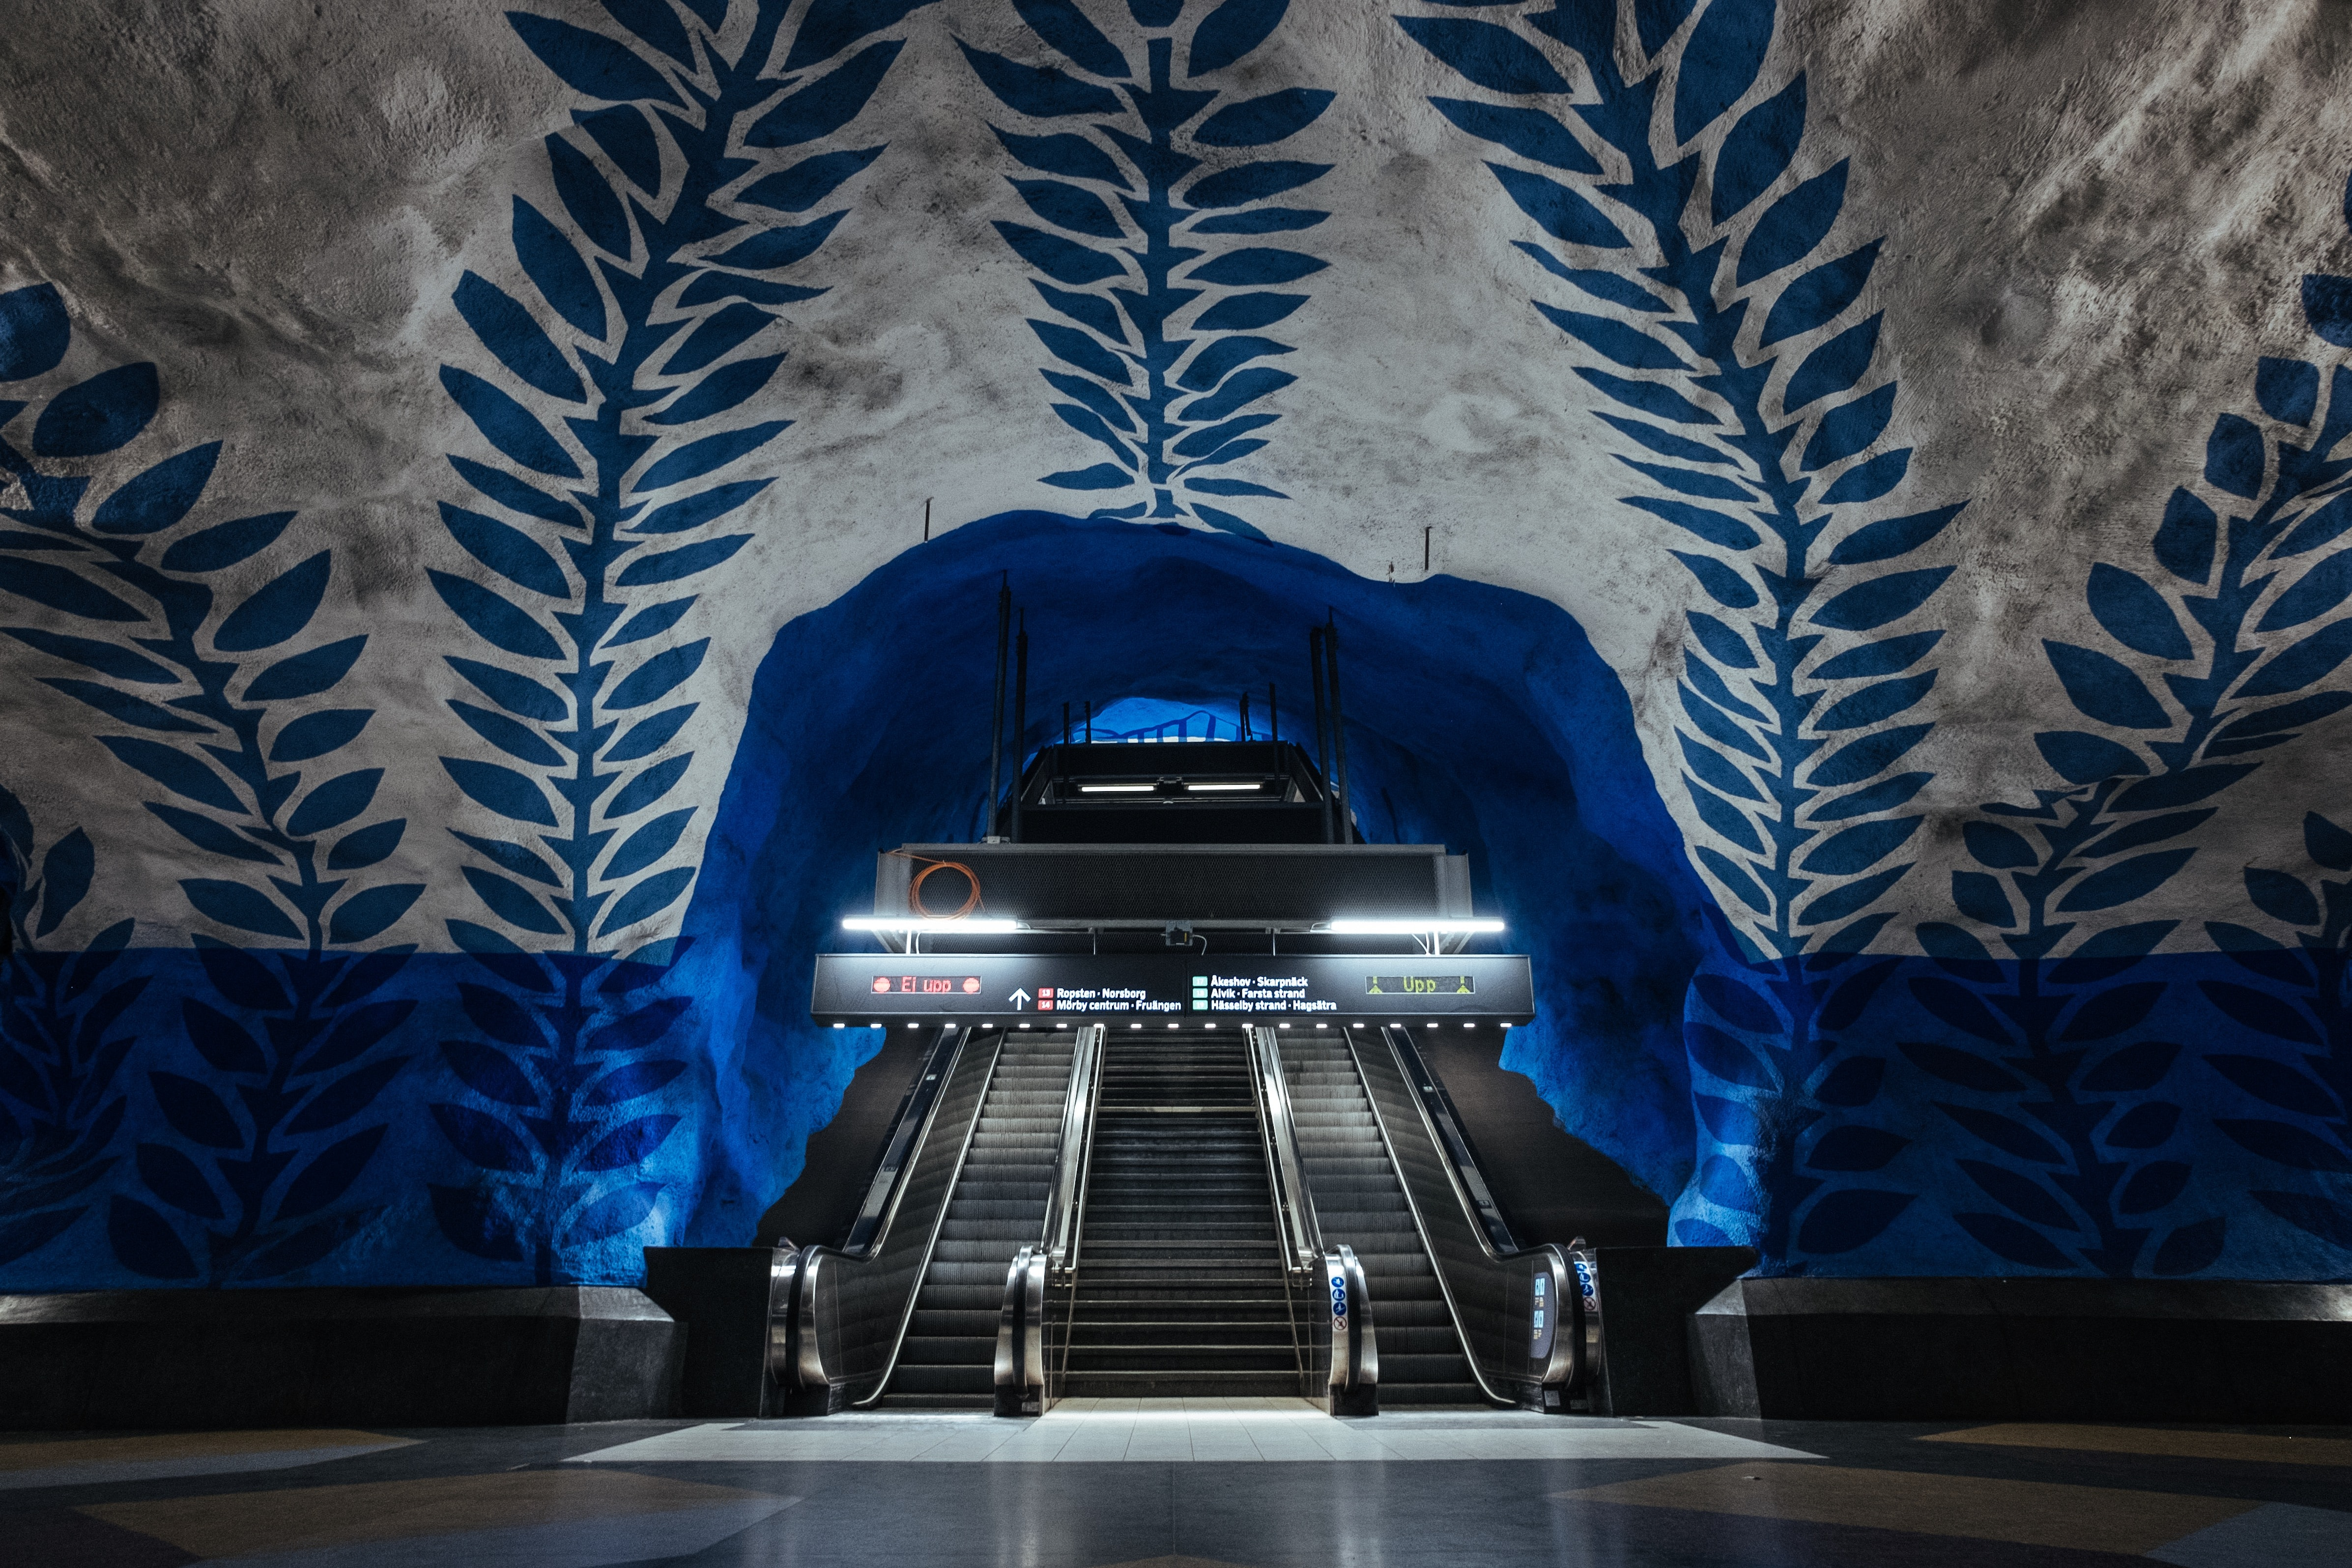 blue and white foliage building interior with escalator